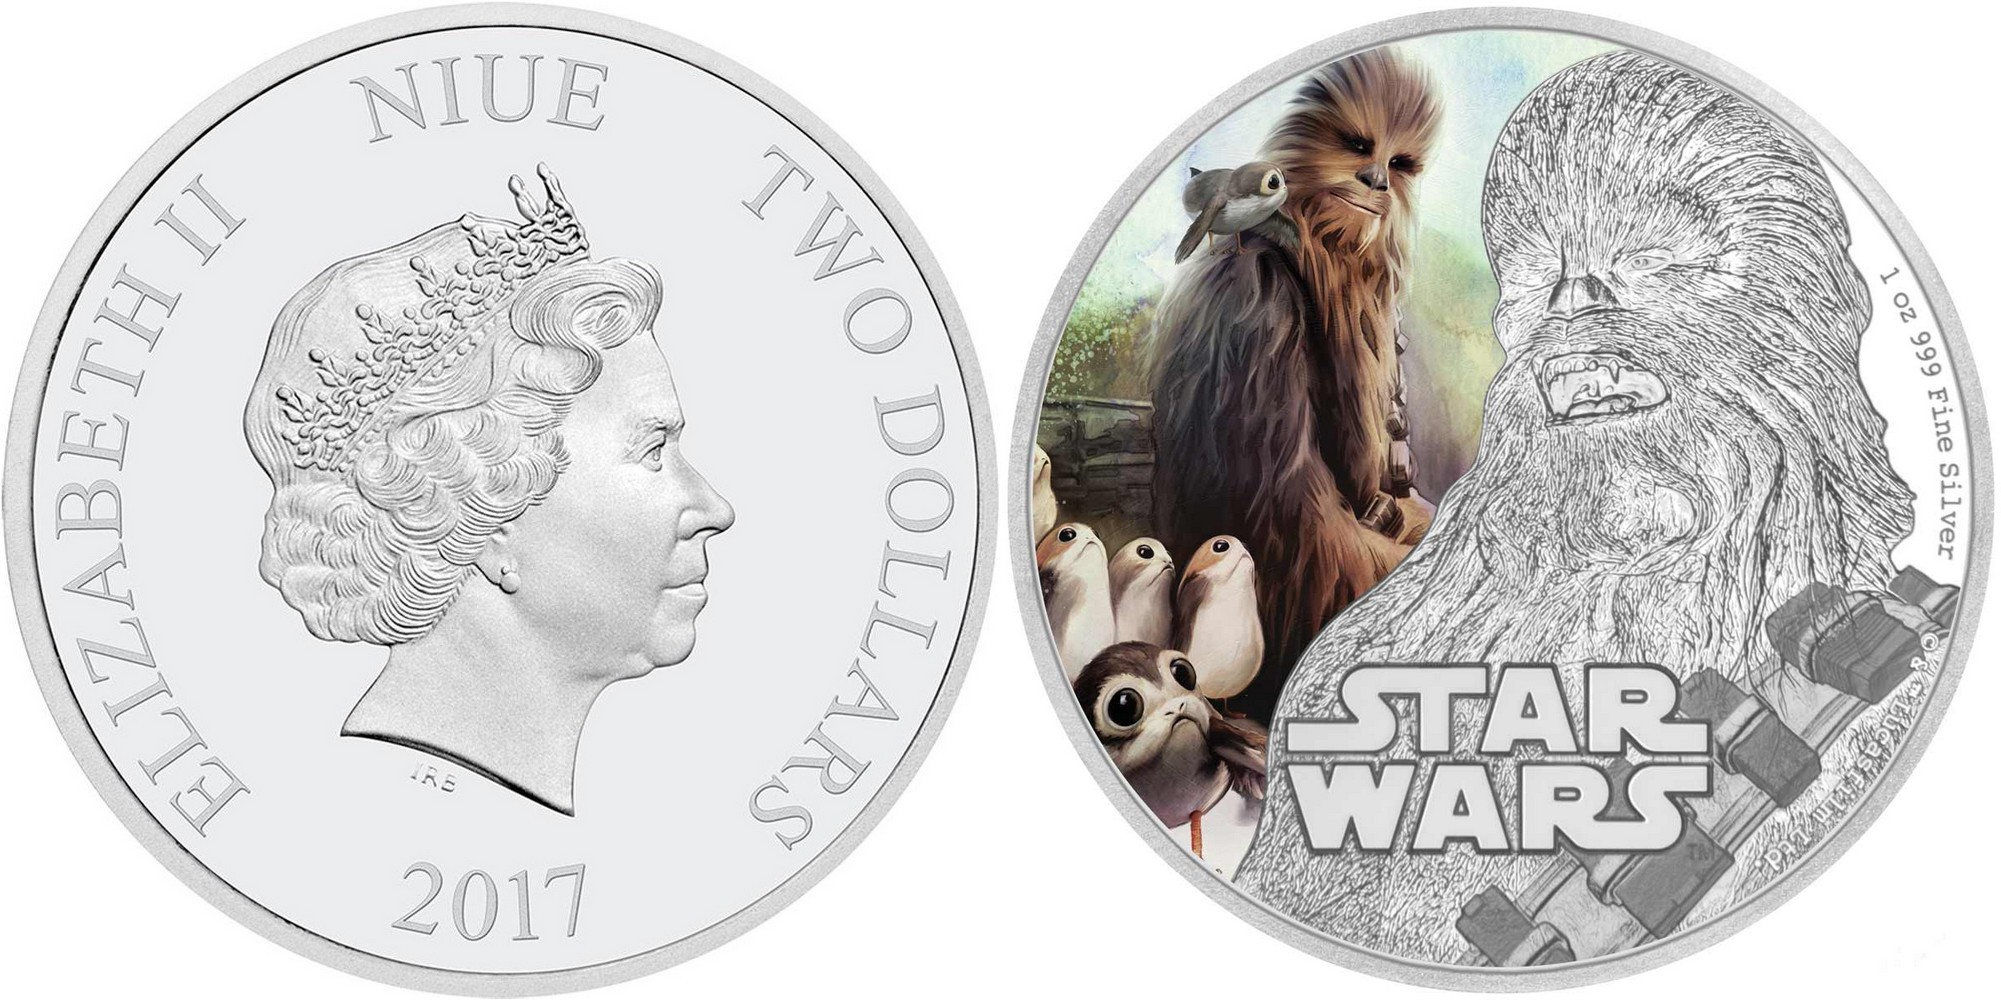 niue 2017 star wars chewbacca